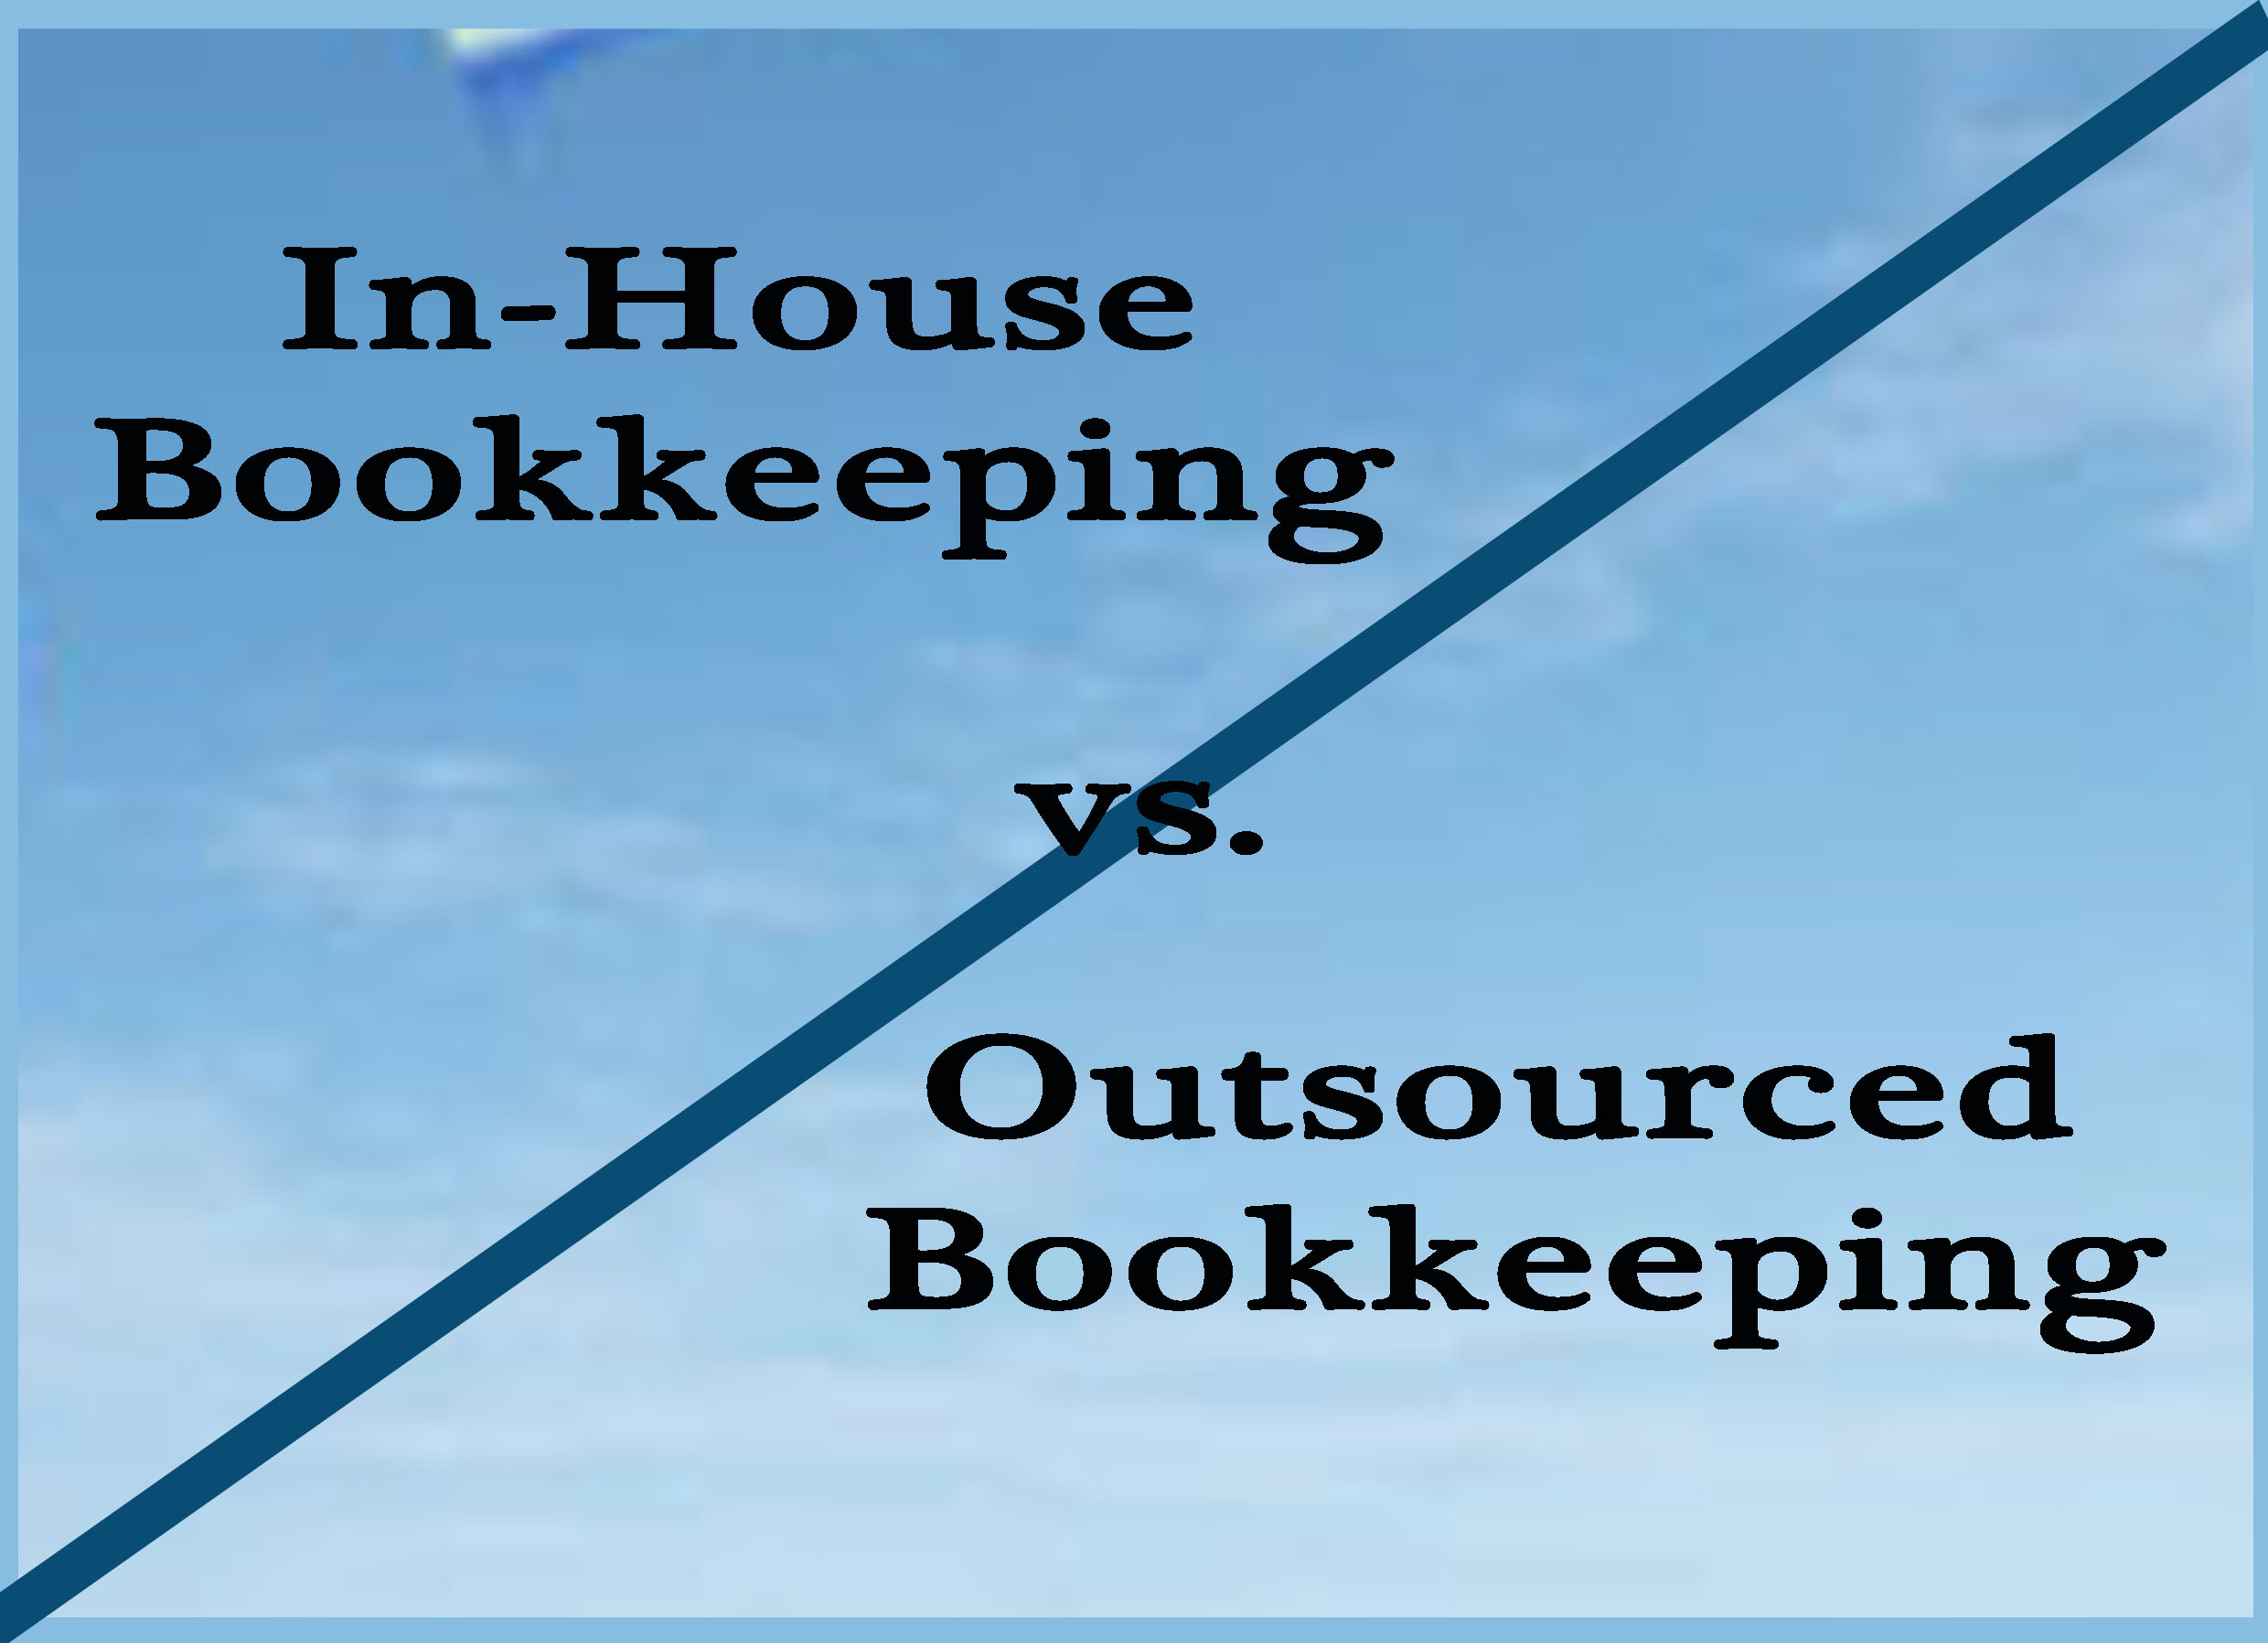 Inhouse Bookkeeping vs Outsourced Bookkeeping